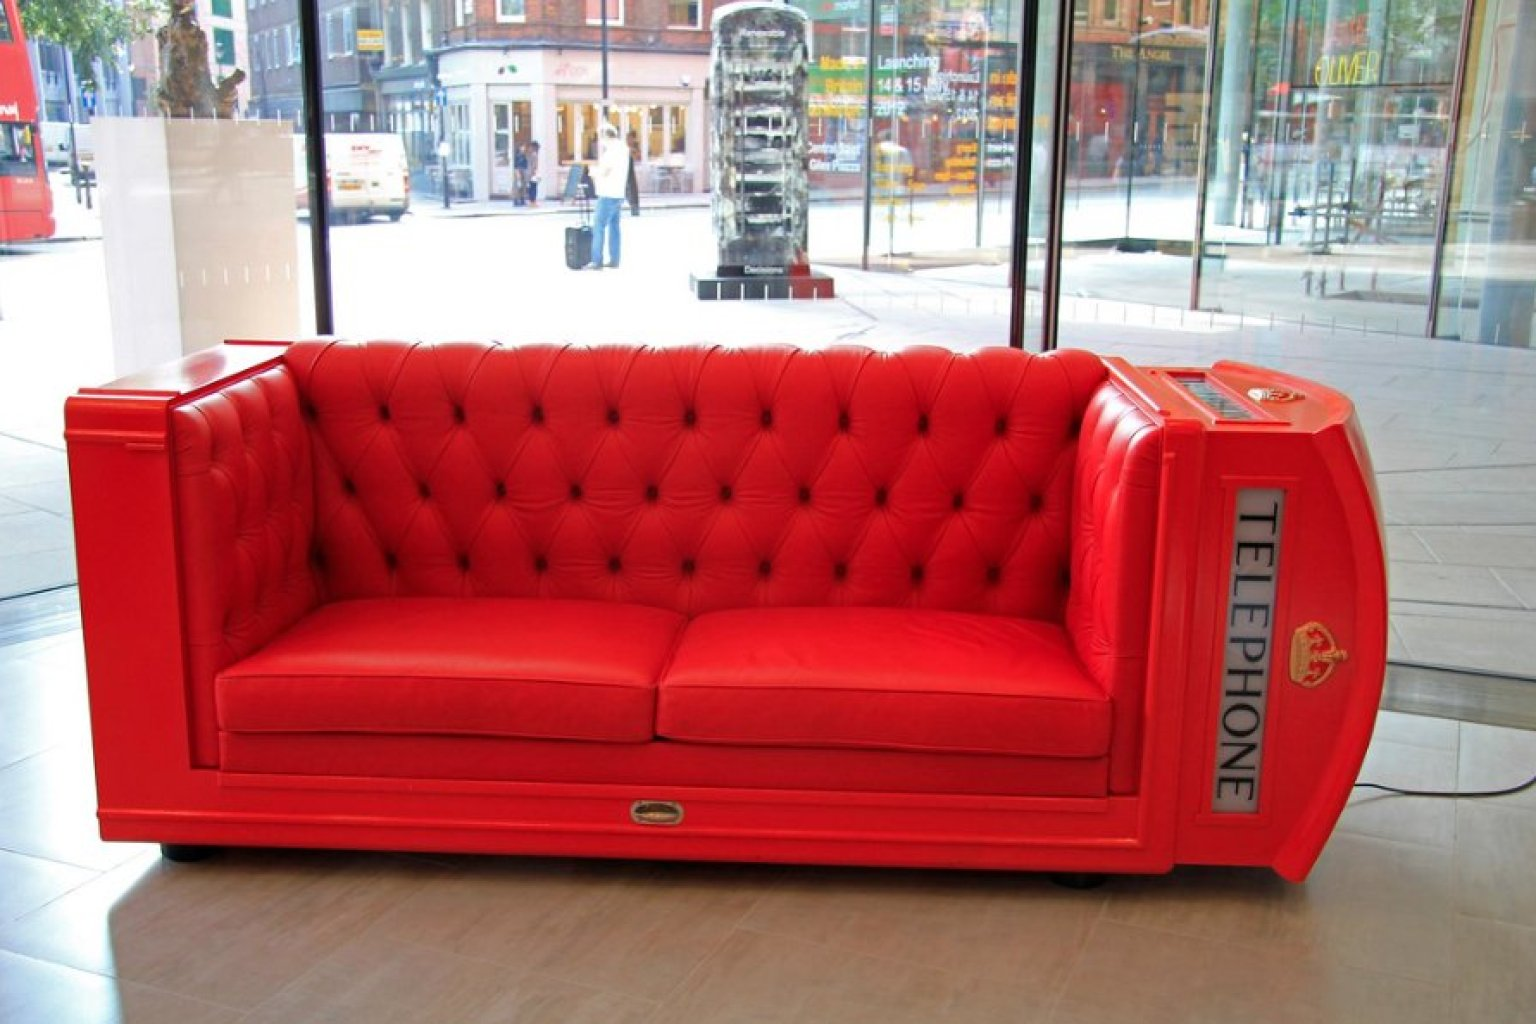 11 Extreme Sofas That Will Make You Rethink Your Trusty Couch (PHOTOS) |  HuffPost